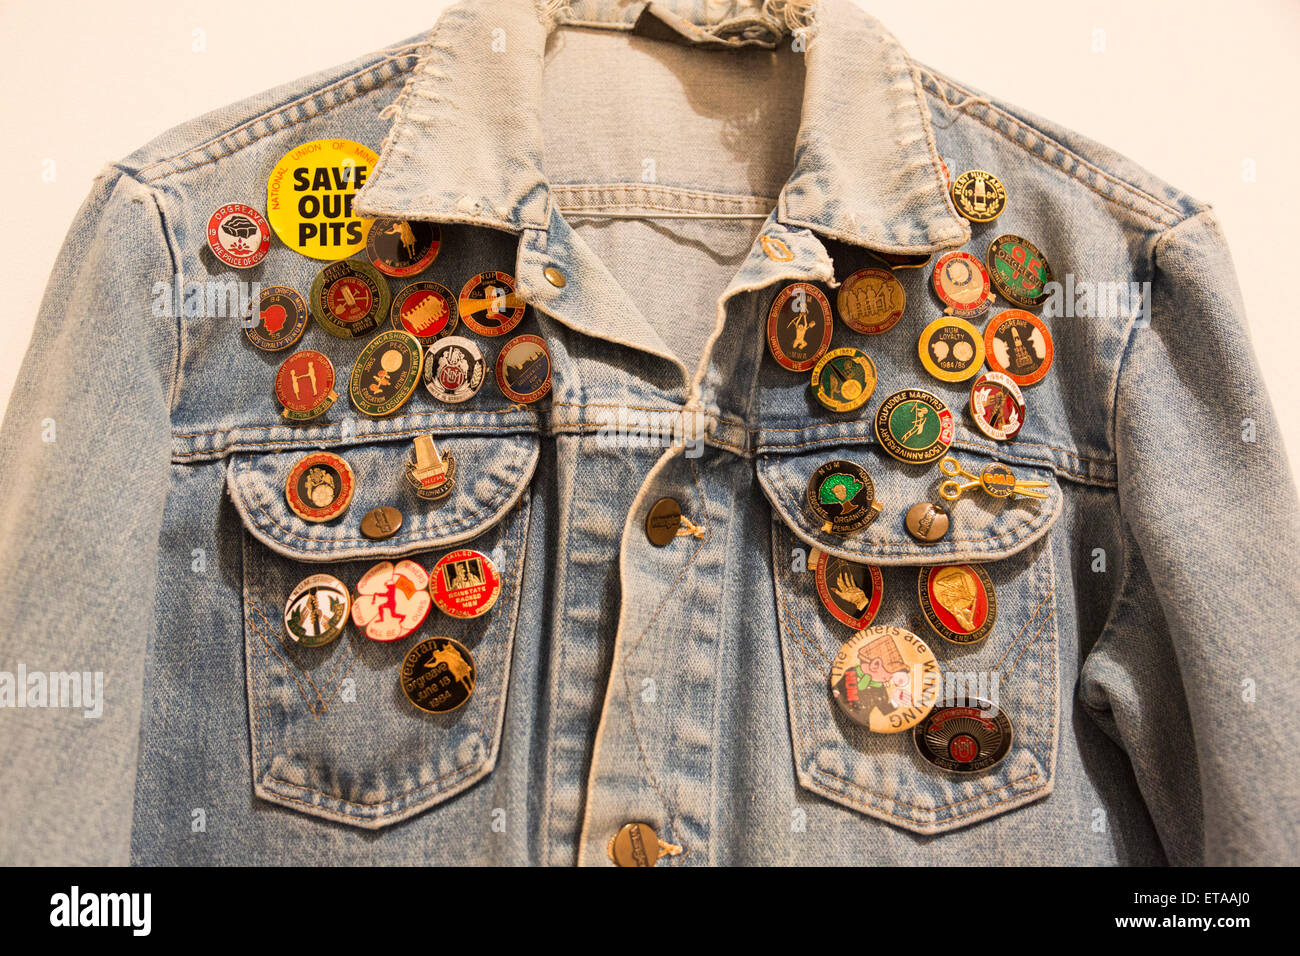 London, UK. 8 June 2015. Pictured: a jeans jacket with memorabilia badges. The Battle of Orgreave Archive (An Injury - Stock Image